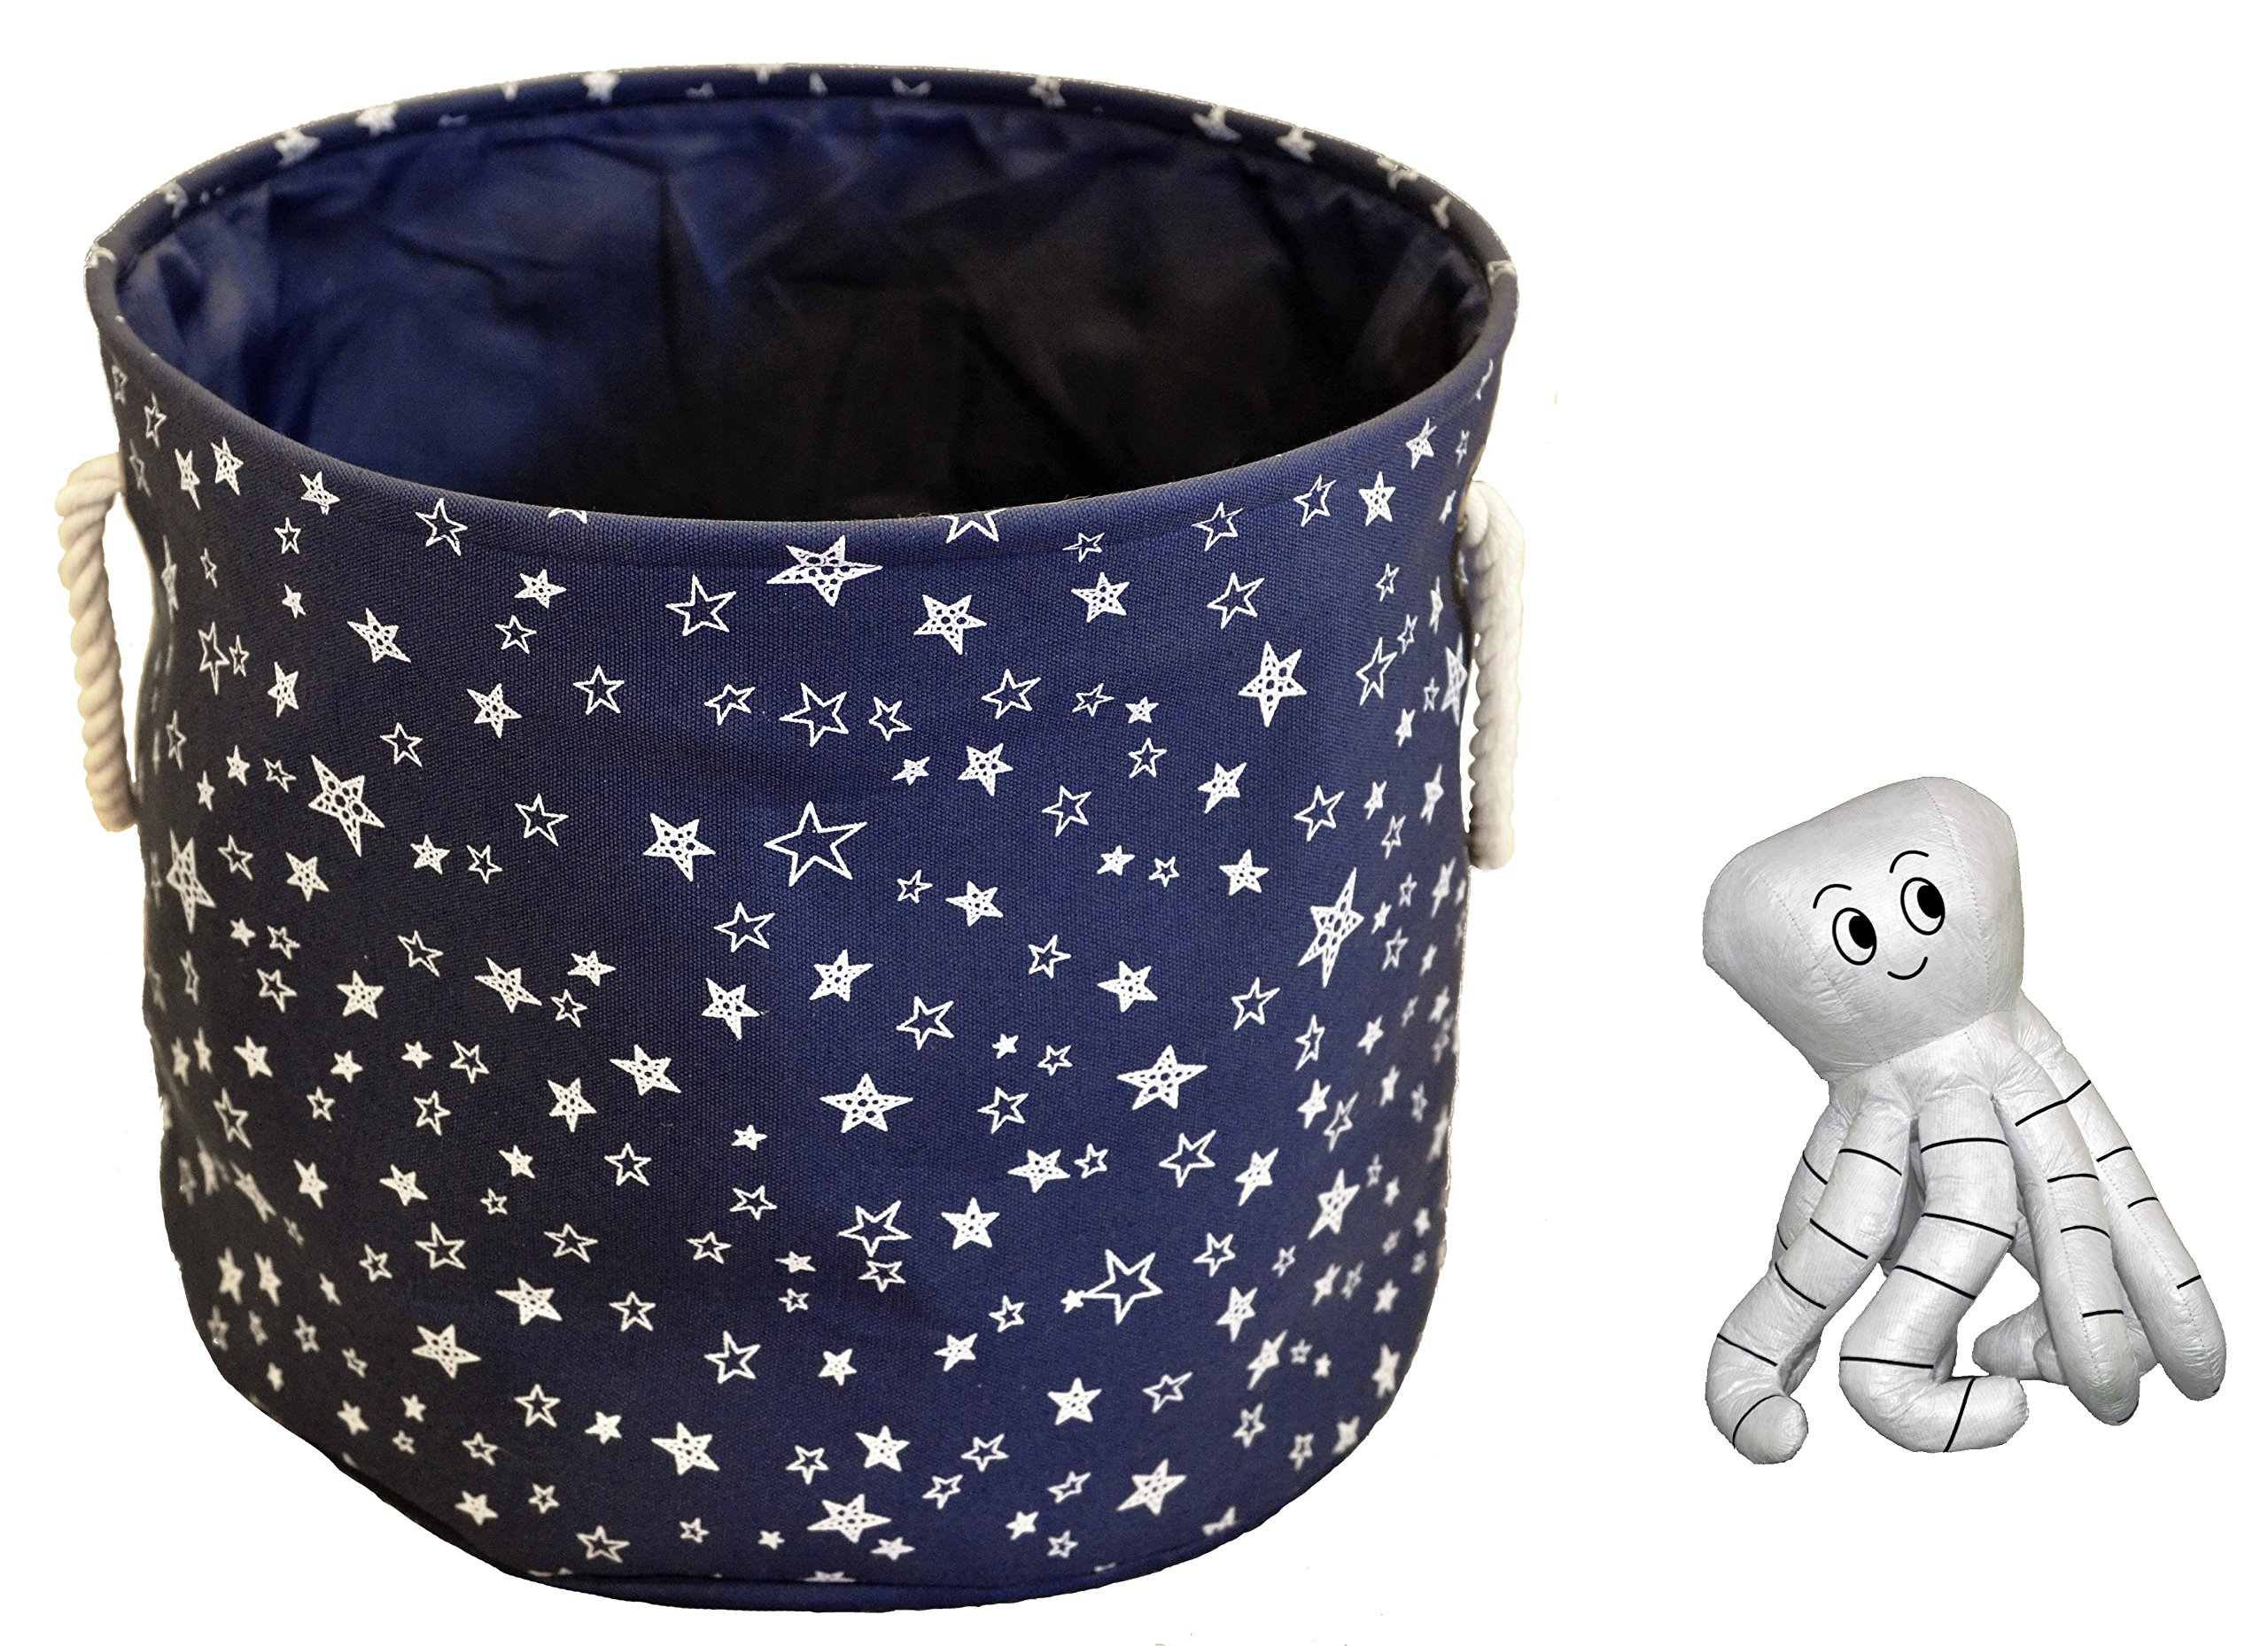 Basket & Toy Combo - Large Eco-Friendly Canvas Toy Storage Baskets Storage Bins Nursery Bins with Handles (Navy Blue) & Octopus Coloring Kitby Cobei Homegoods by Cobei Homegoods